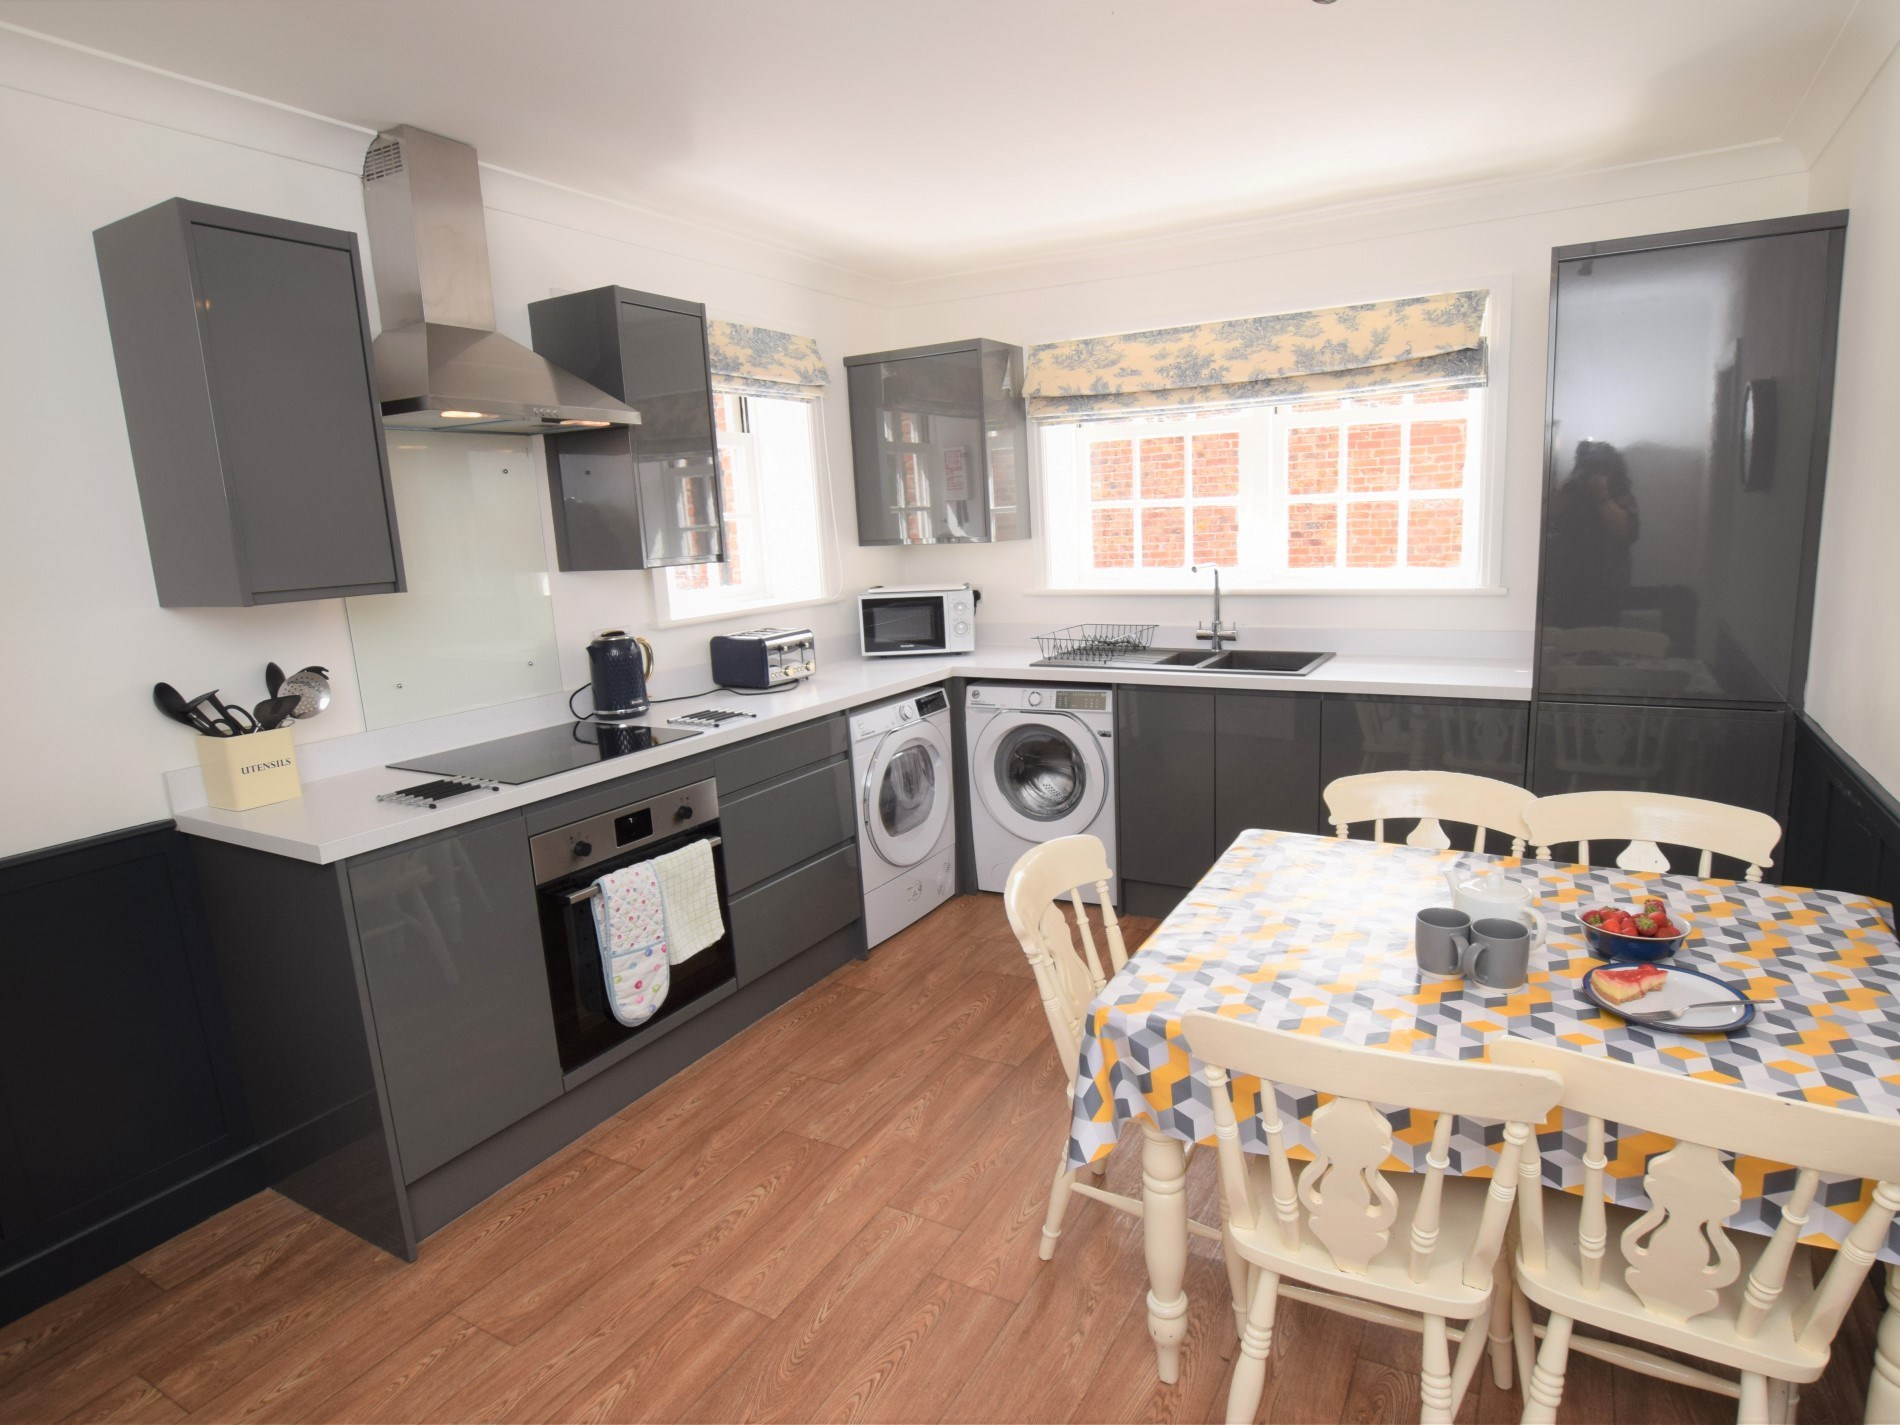 2 Bedroom Cottage in East Riding, North York Moors and Coast